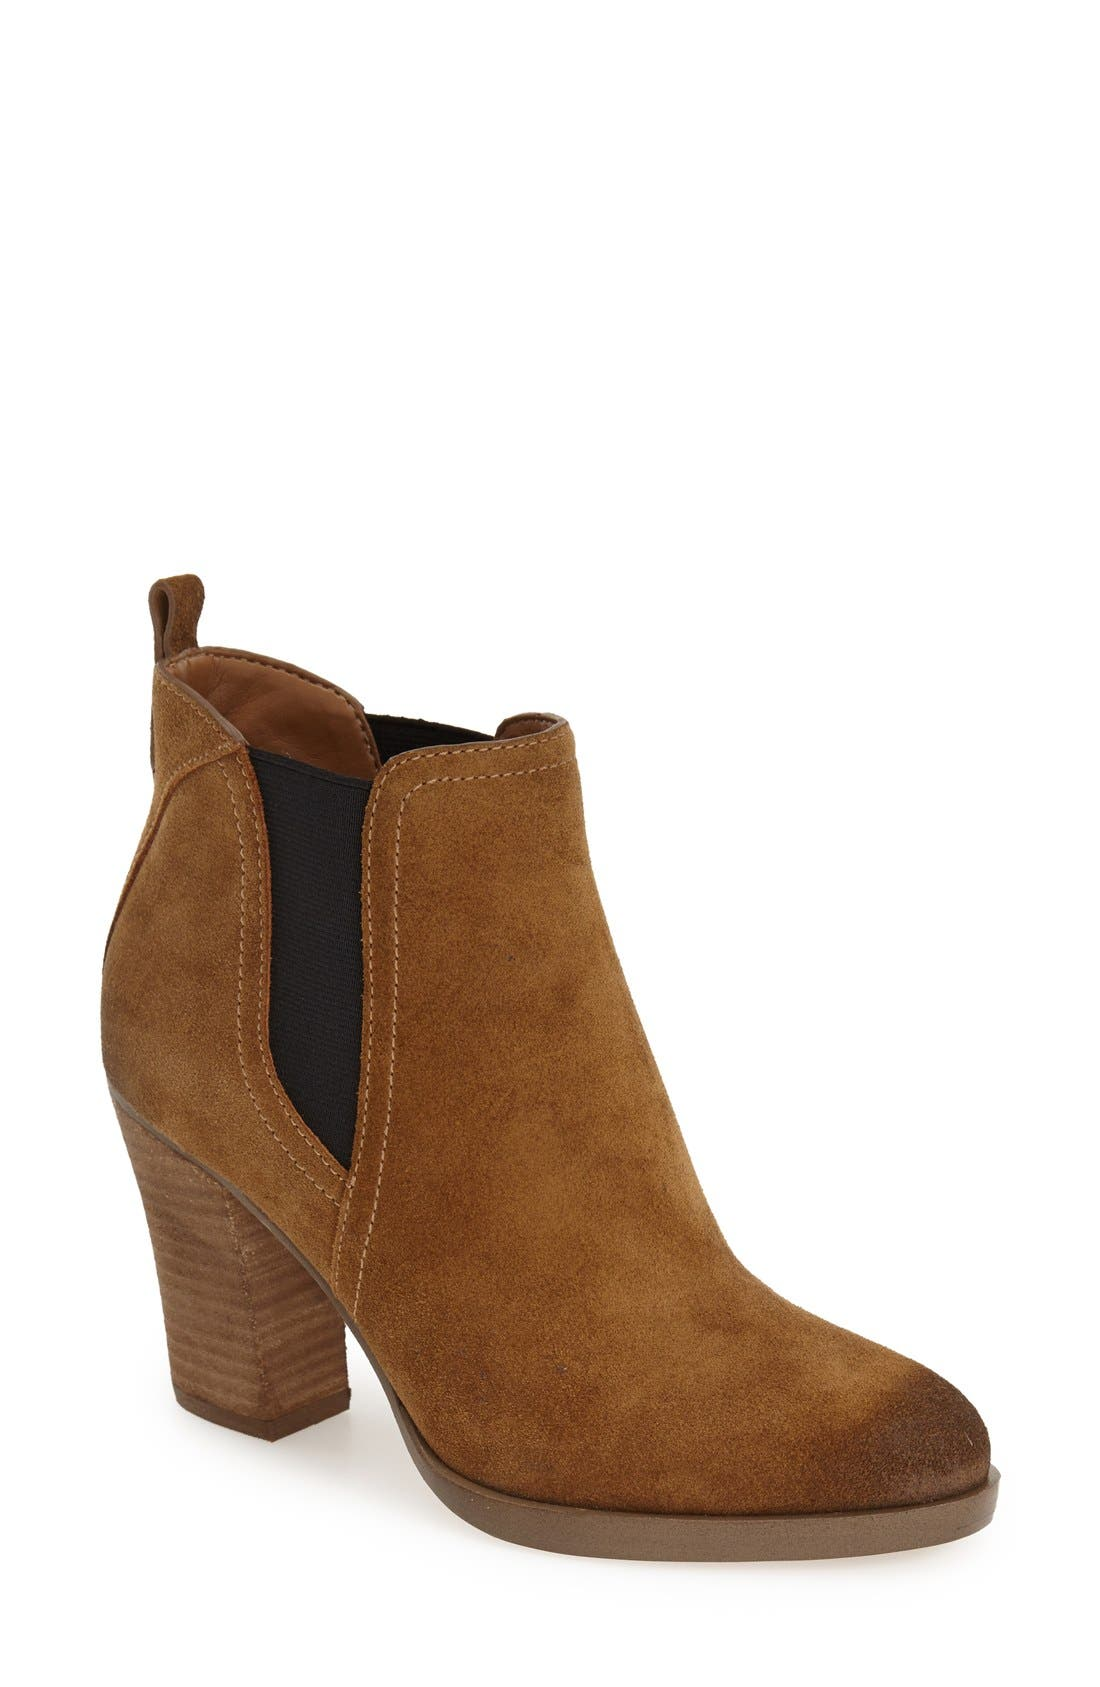 Alternate Image 1 Selected - Marc Fisher LTD 'Mallory' Chelsea Boot (Women)